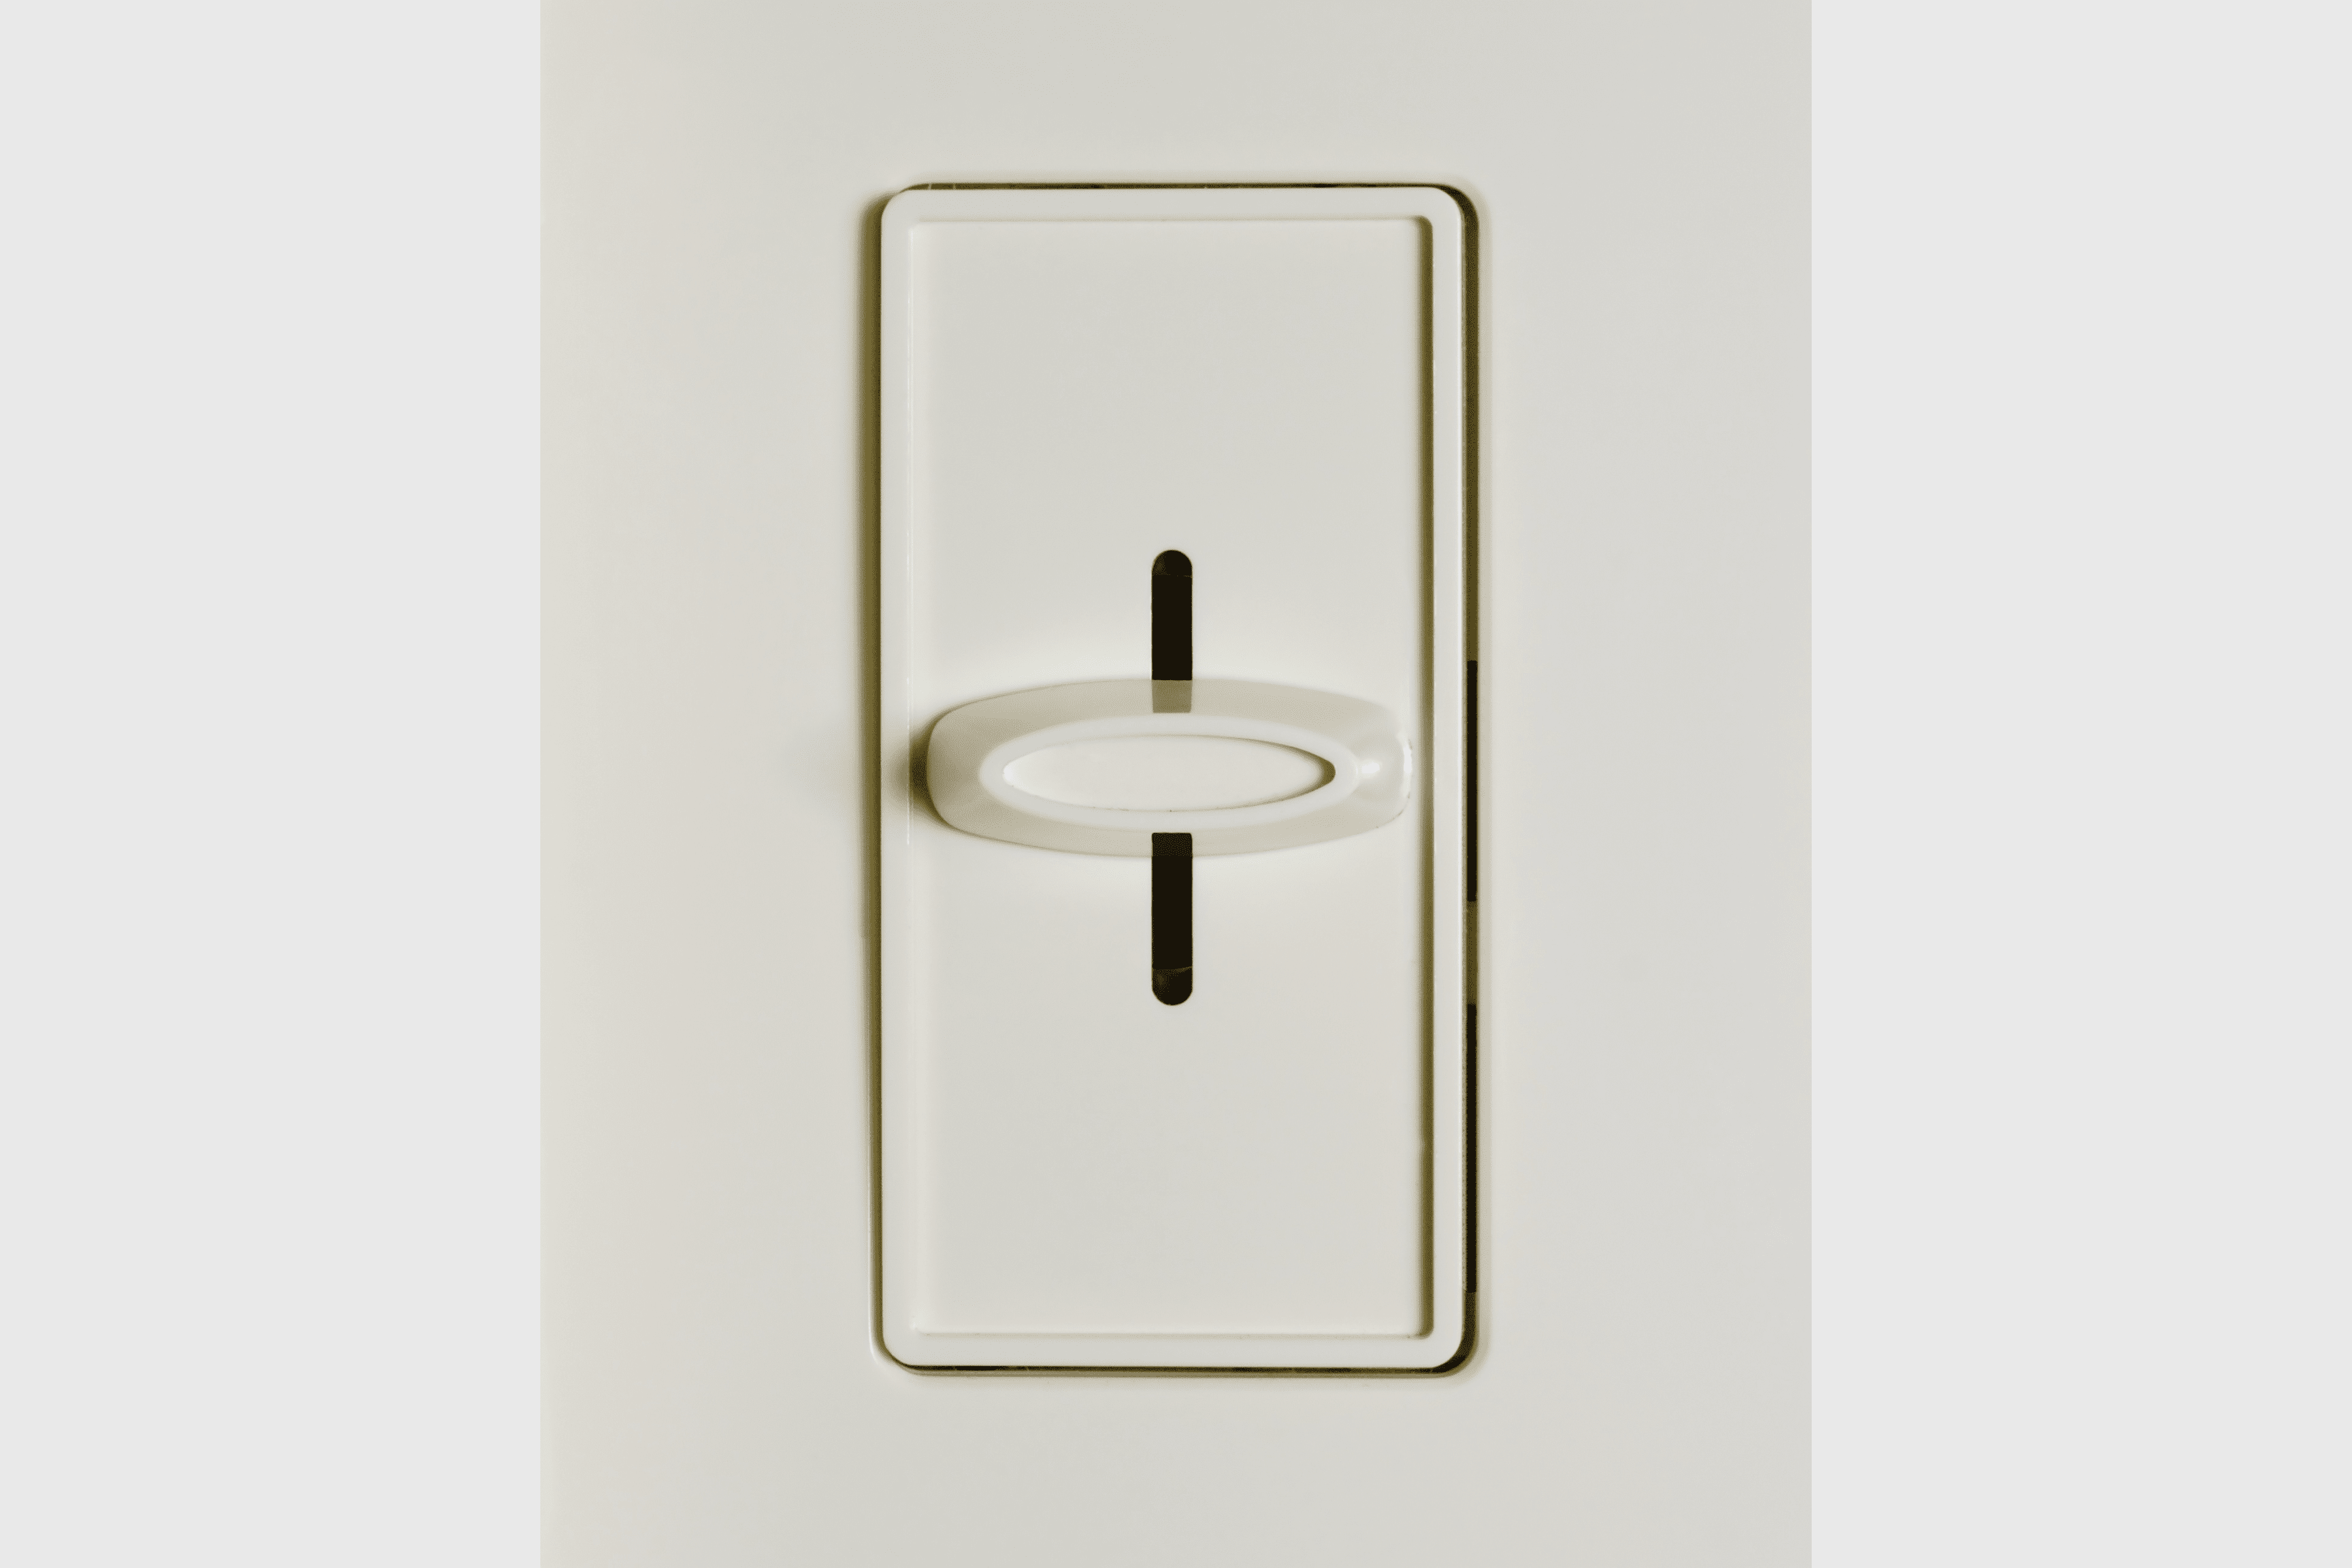 a light switch dimmer